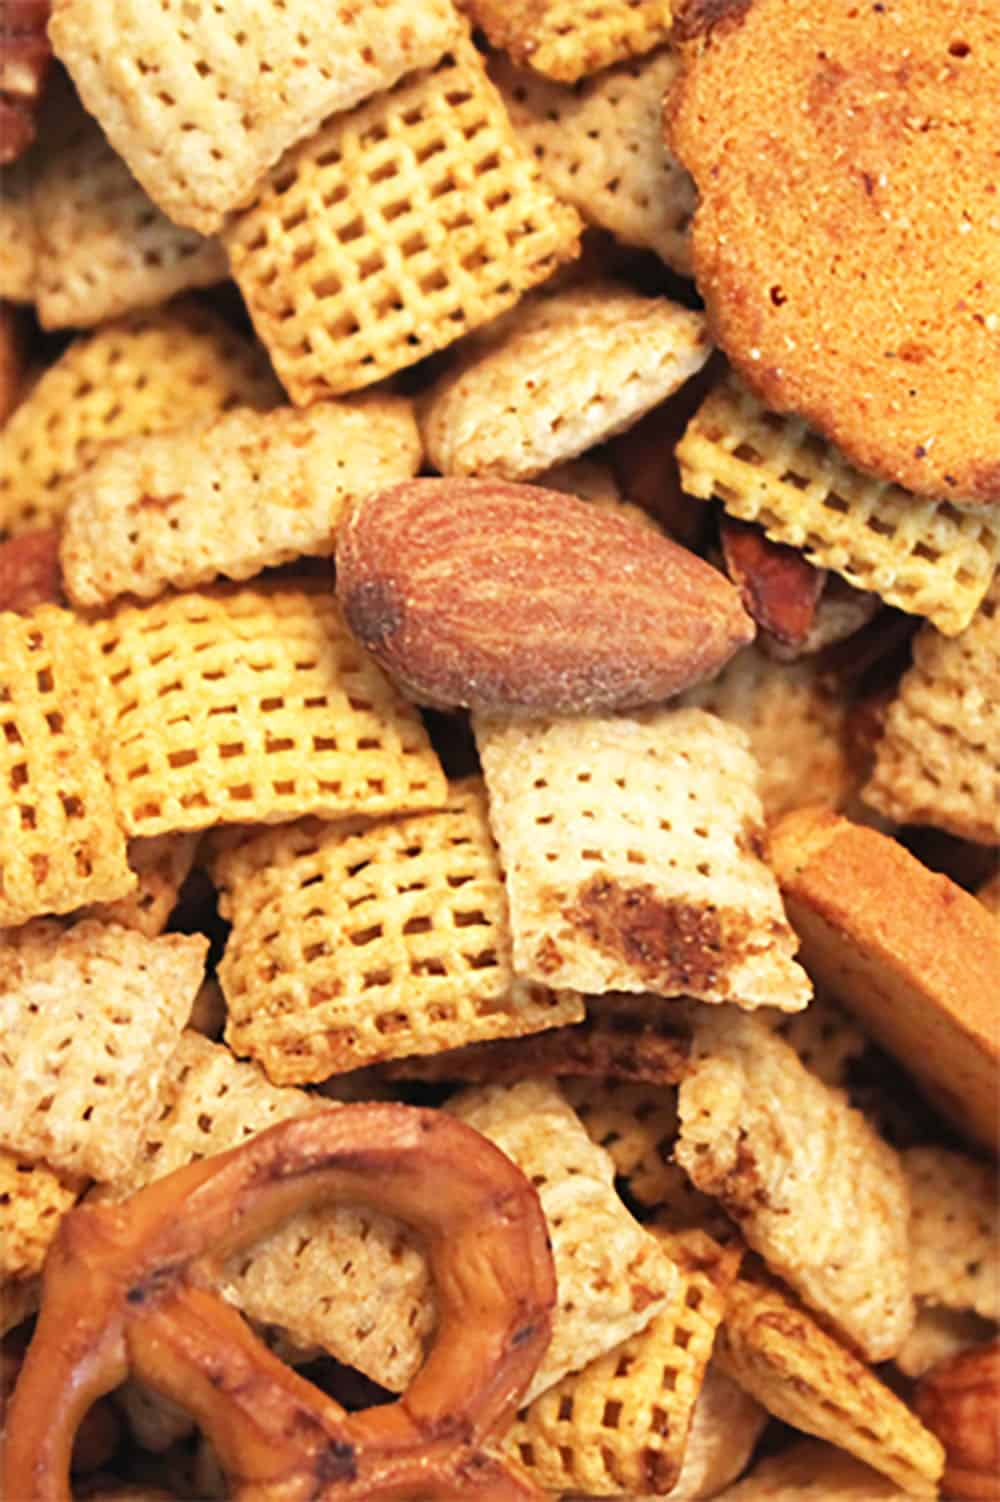 Snack mix closeup on cookie sheet.